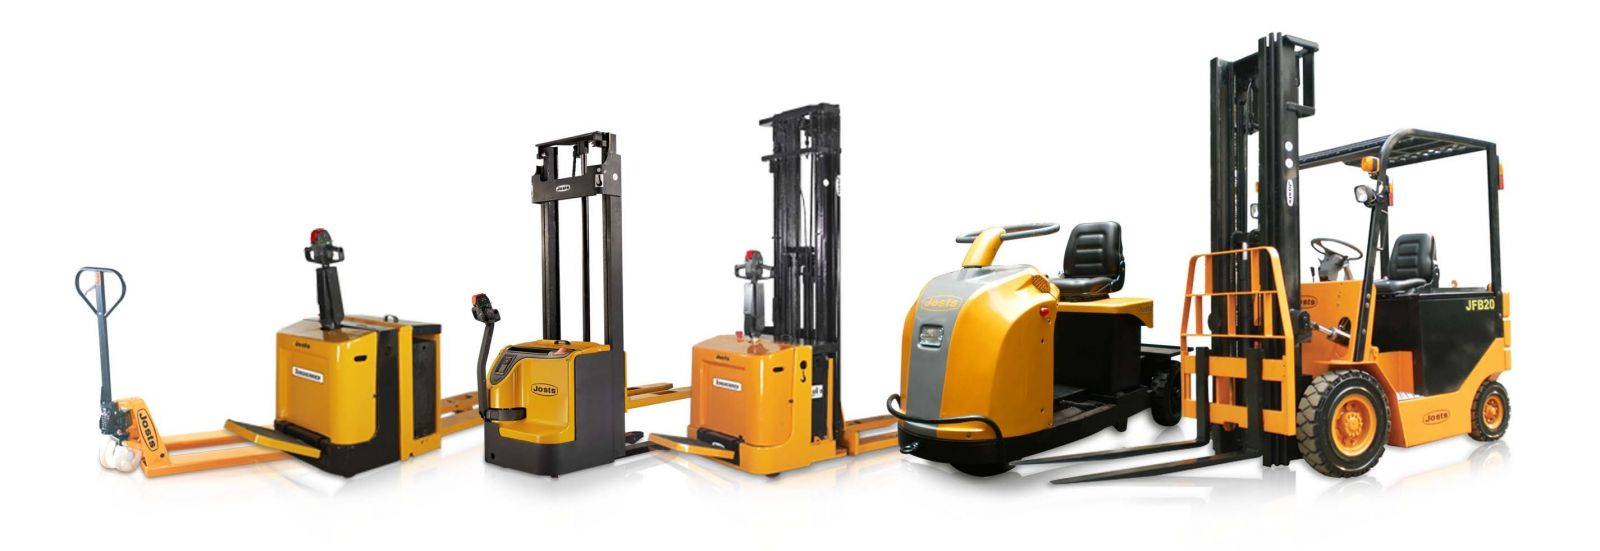 Material Handling Equipment Size, Industry Analysis Report by 2025